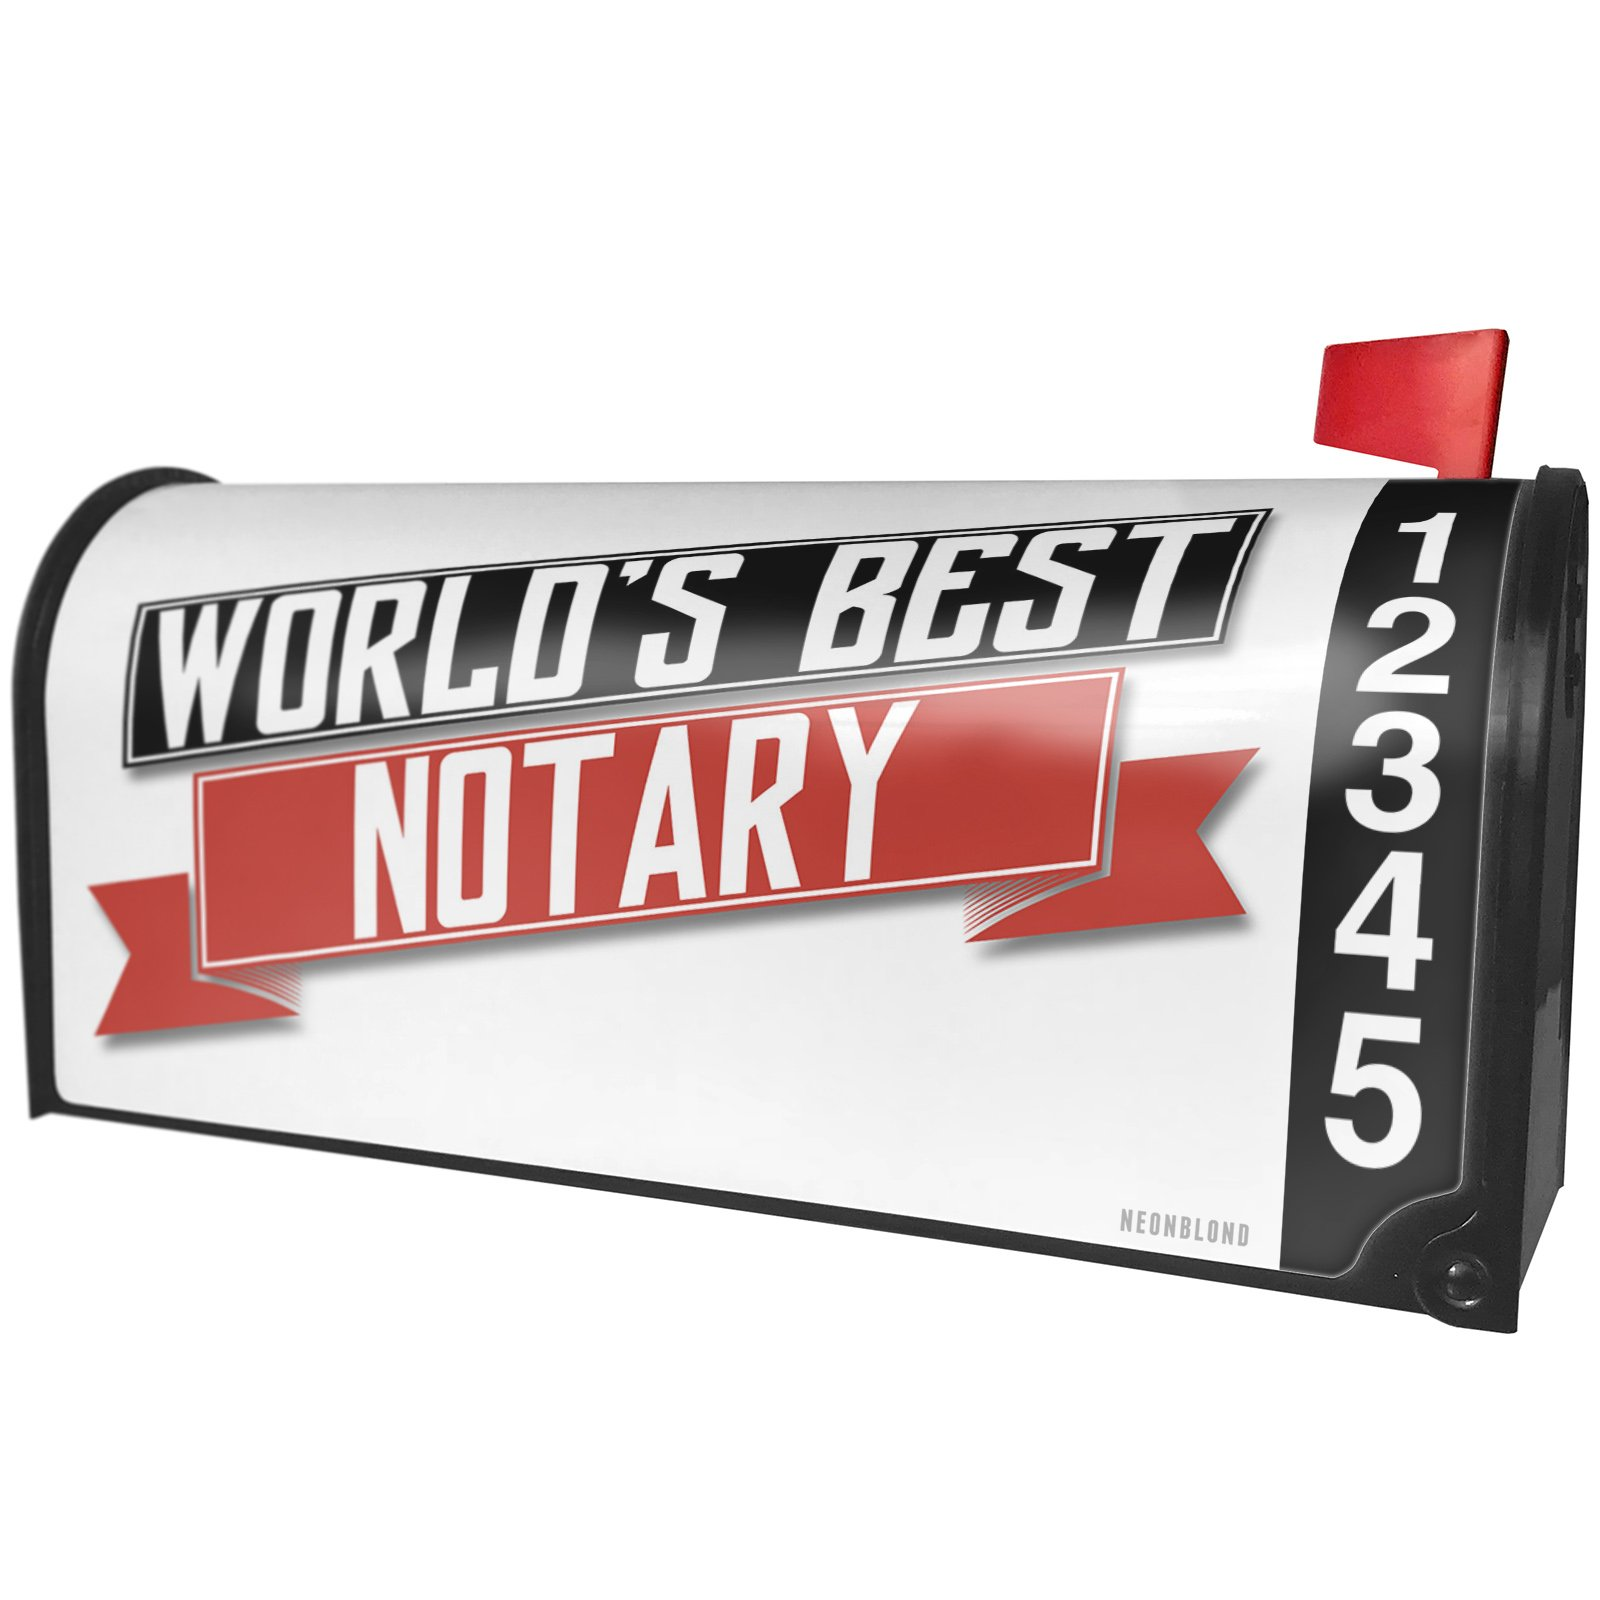 NEONBLOND Worlds Best Notary Magnetic Mailbox Cover Custom Numbers